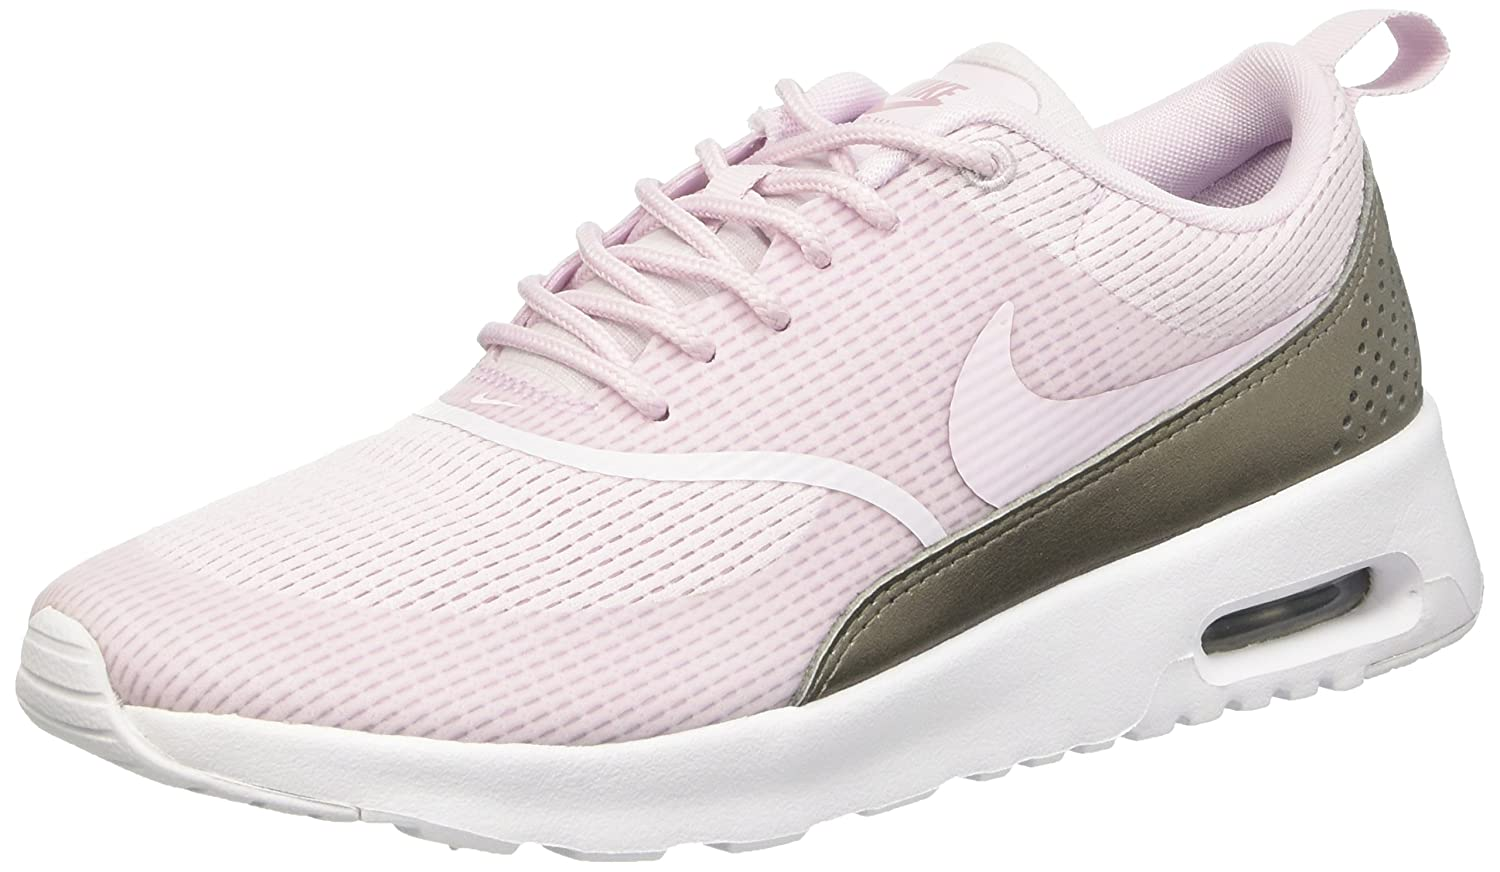 Nike Women's Air Max Thea TxT Bleached LilacBleached Lilac